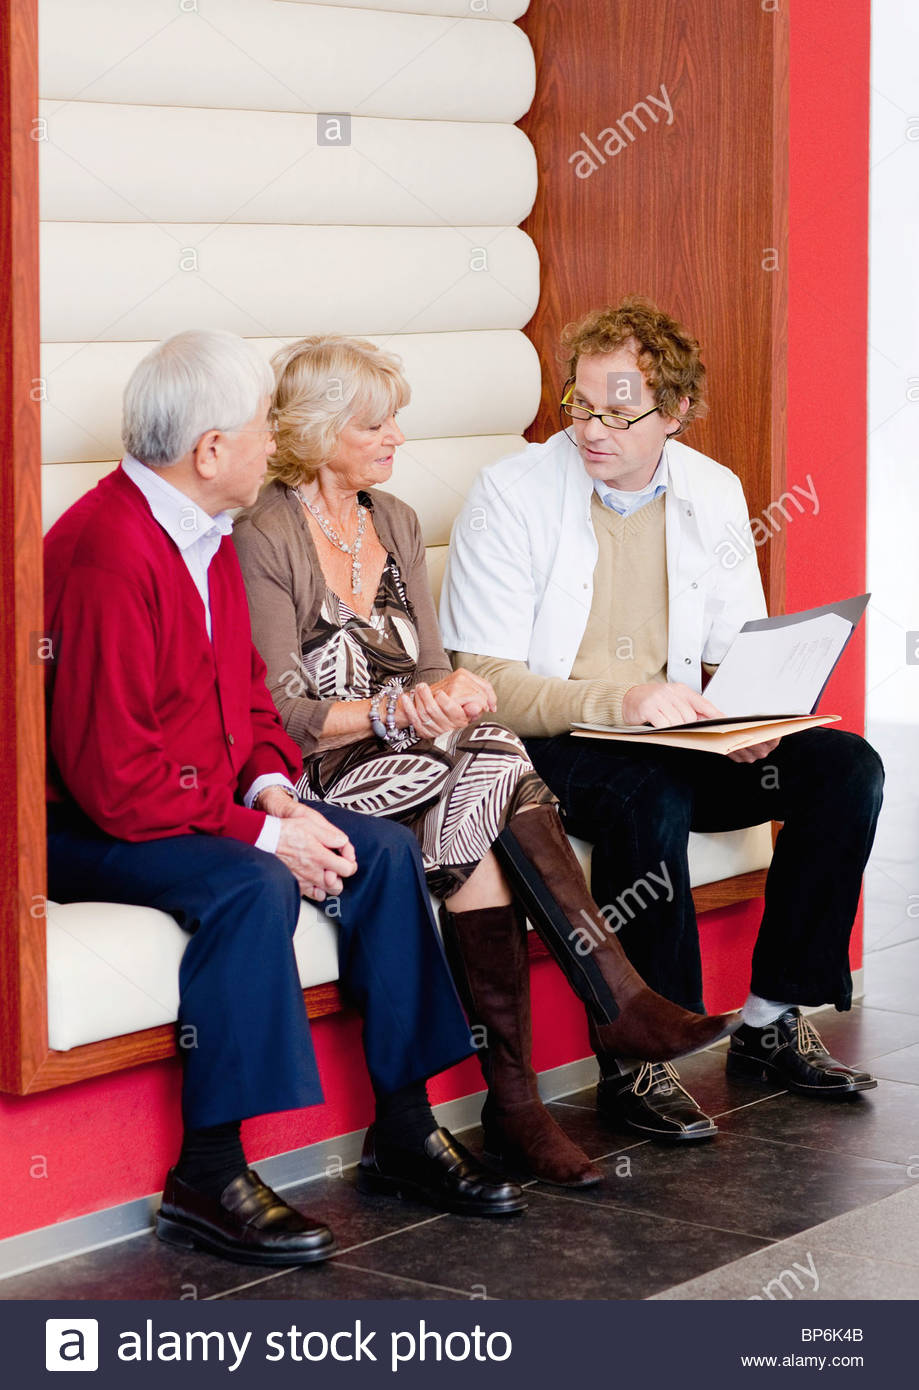 A senior couple talking to a medical consultant - Stock Image